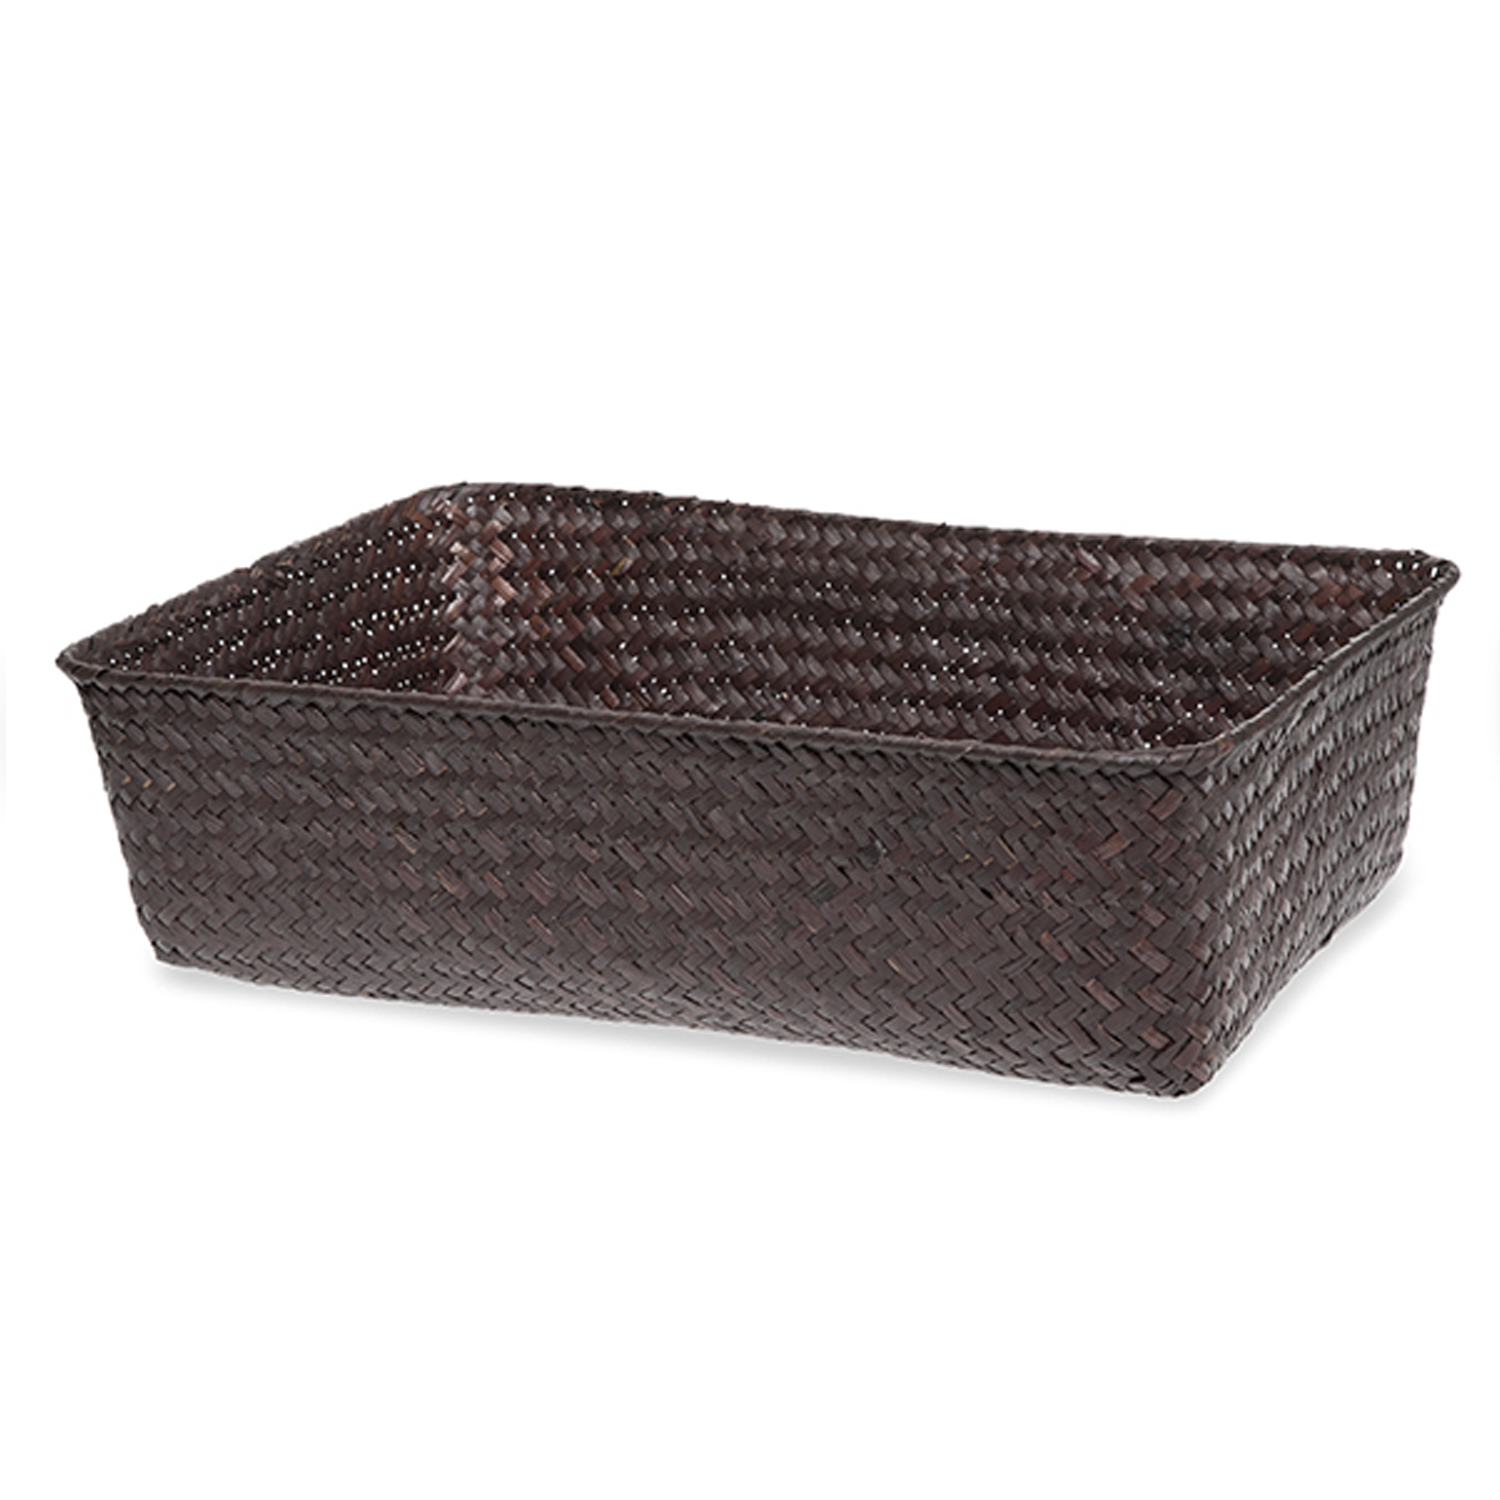 Alexa Rectangular Tray - Large 12in